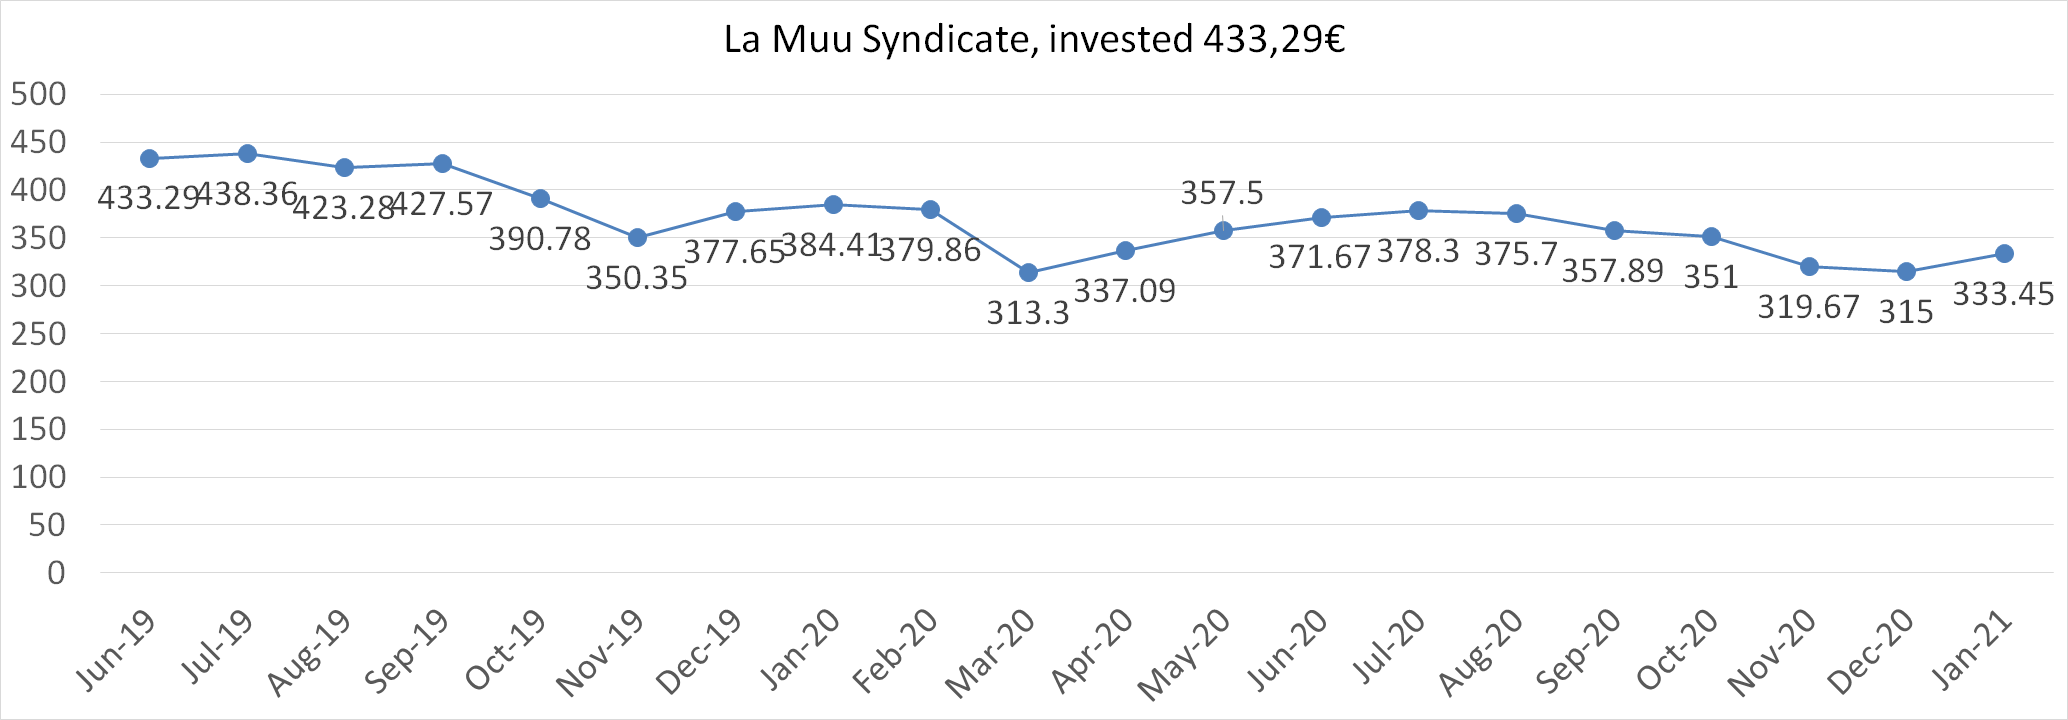 La Muu syndicate worth january 2021